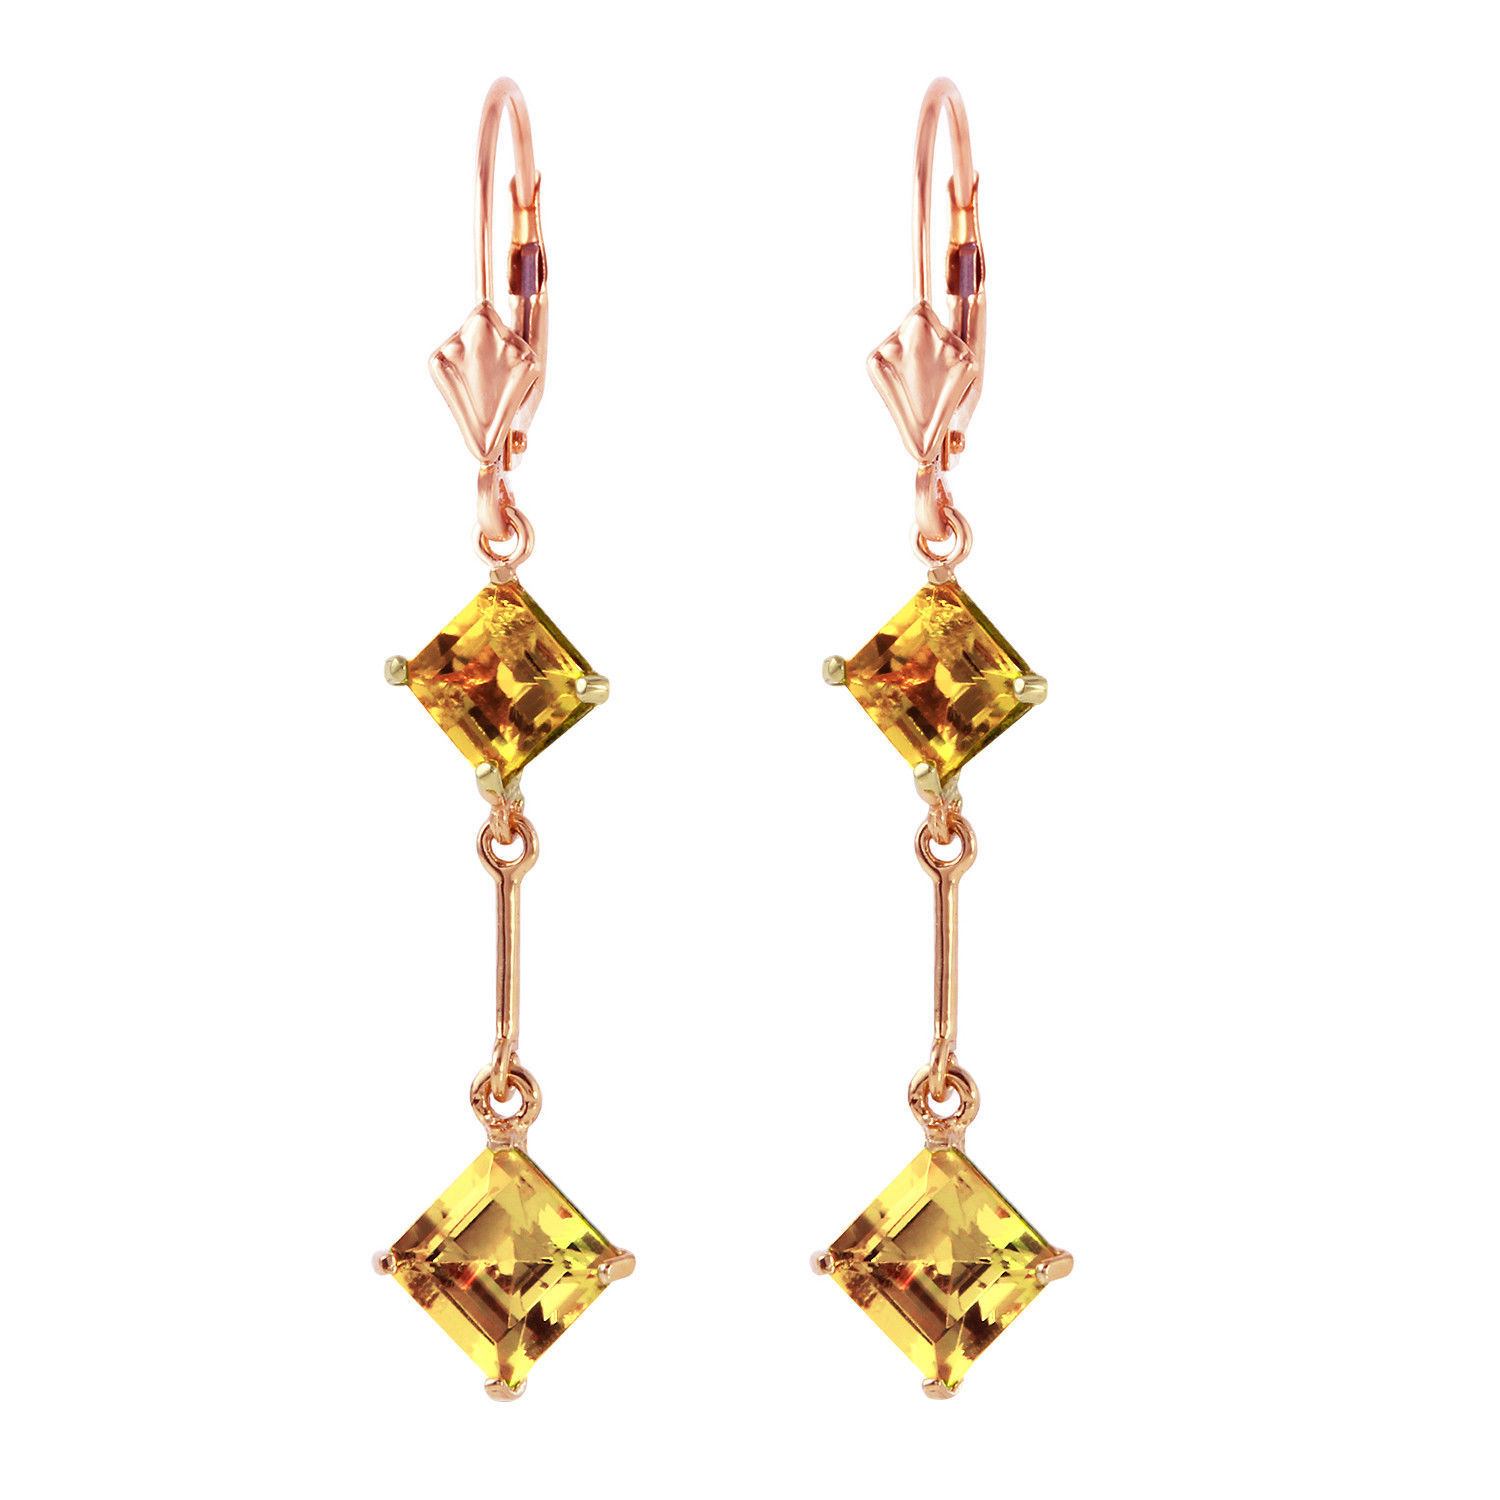 Primary image for 14K Solid Rose Gold Women's Stunning Leverback Fashion Earrings w/ Citrines